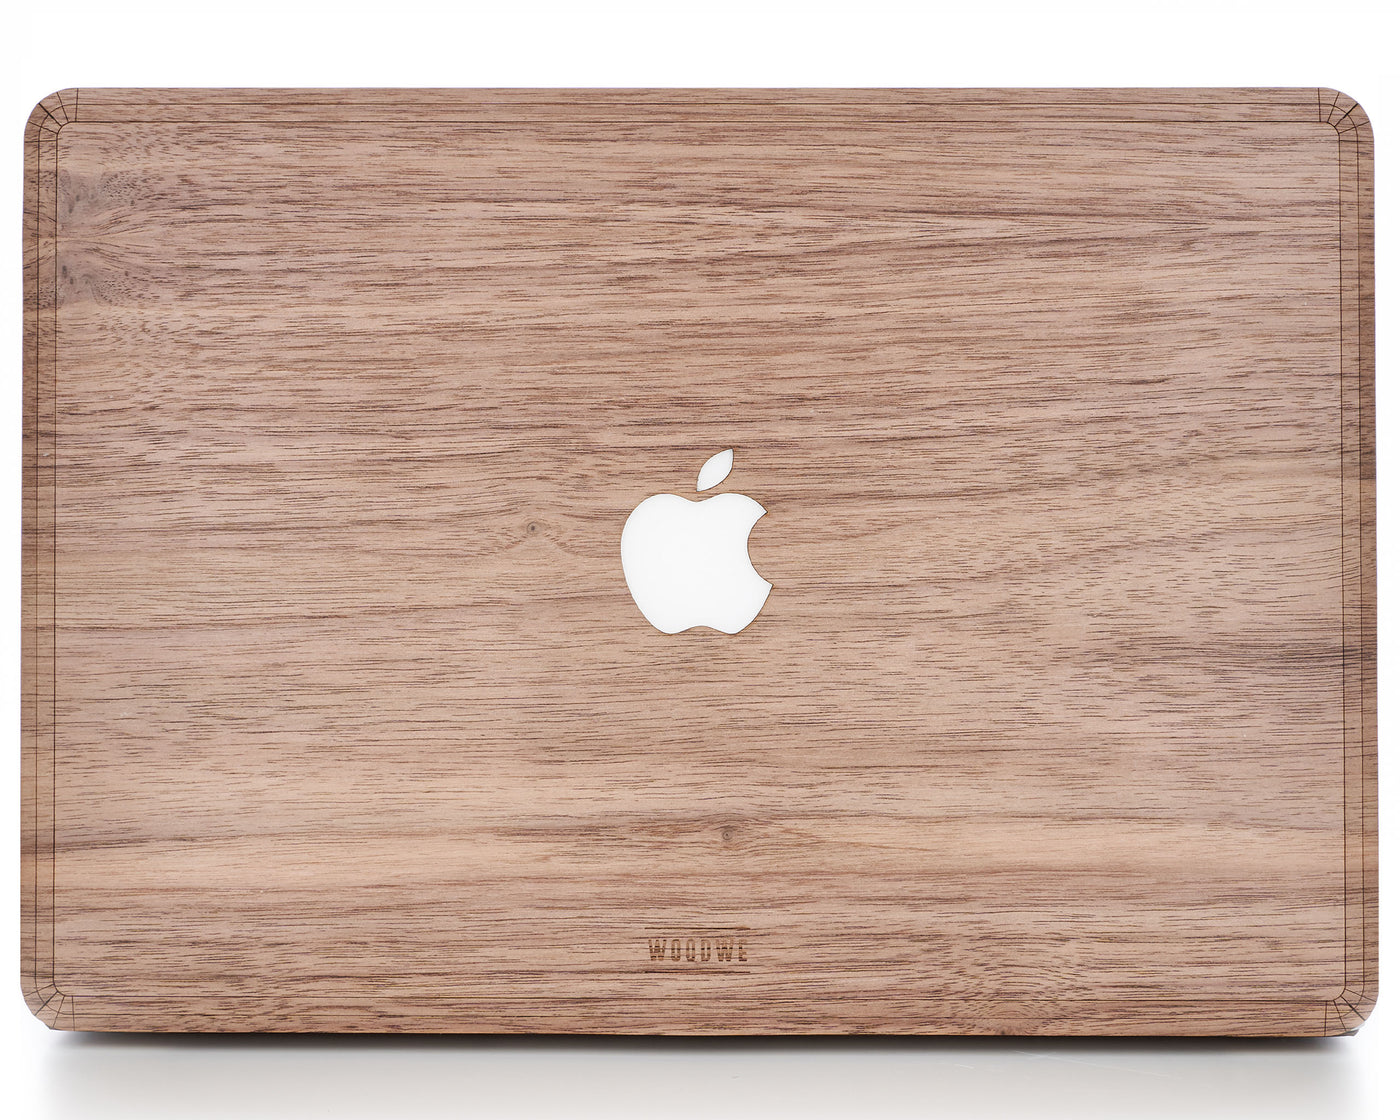 CUSTOMISE - MACBOOK WOOD COLLECTION